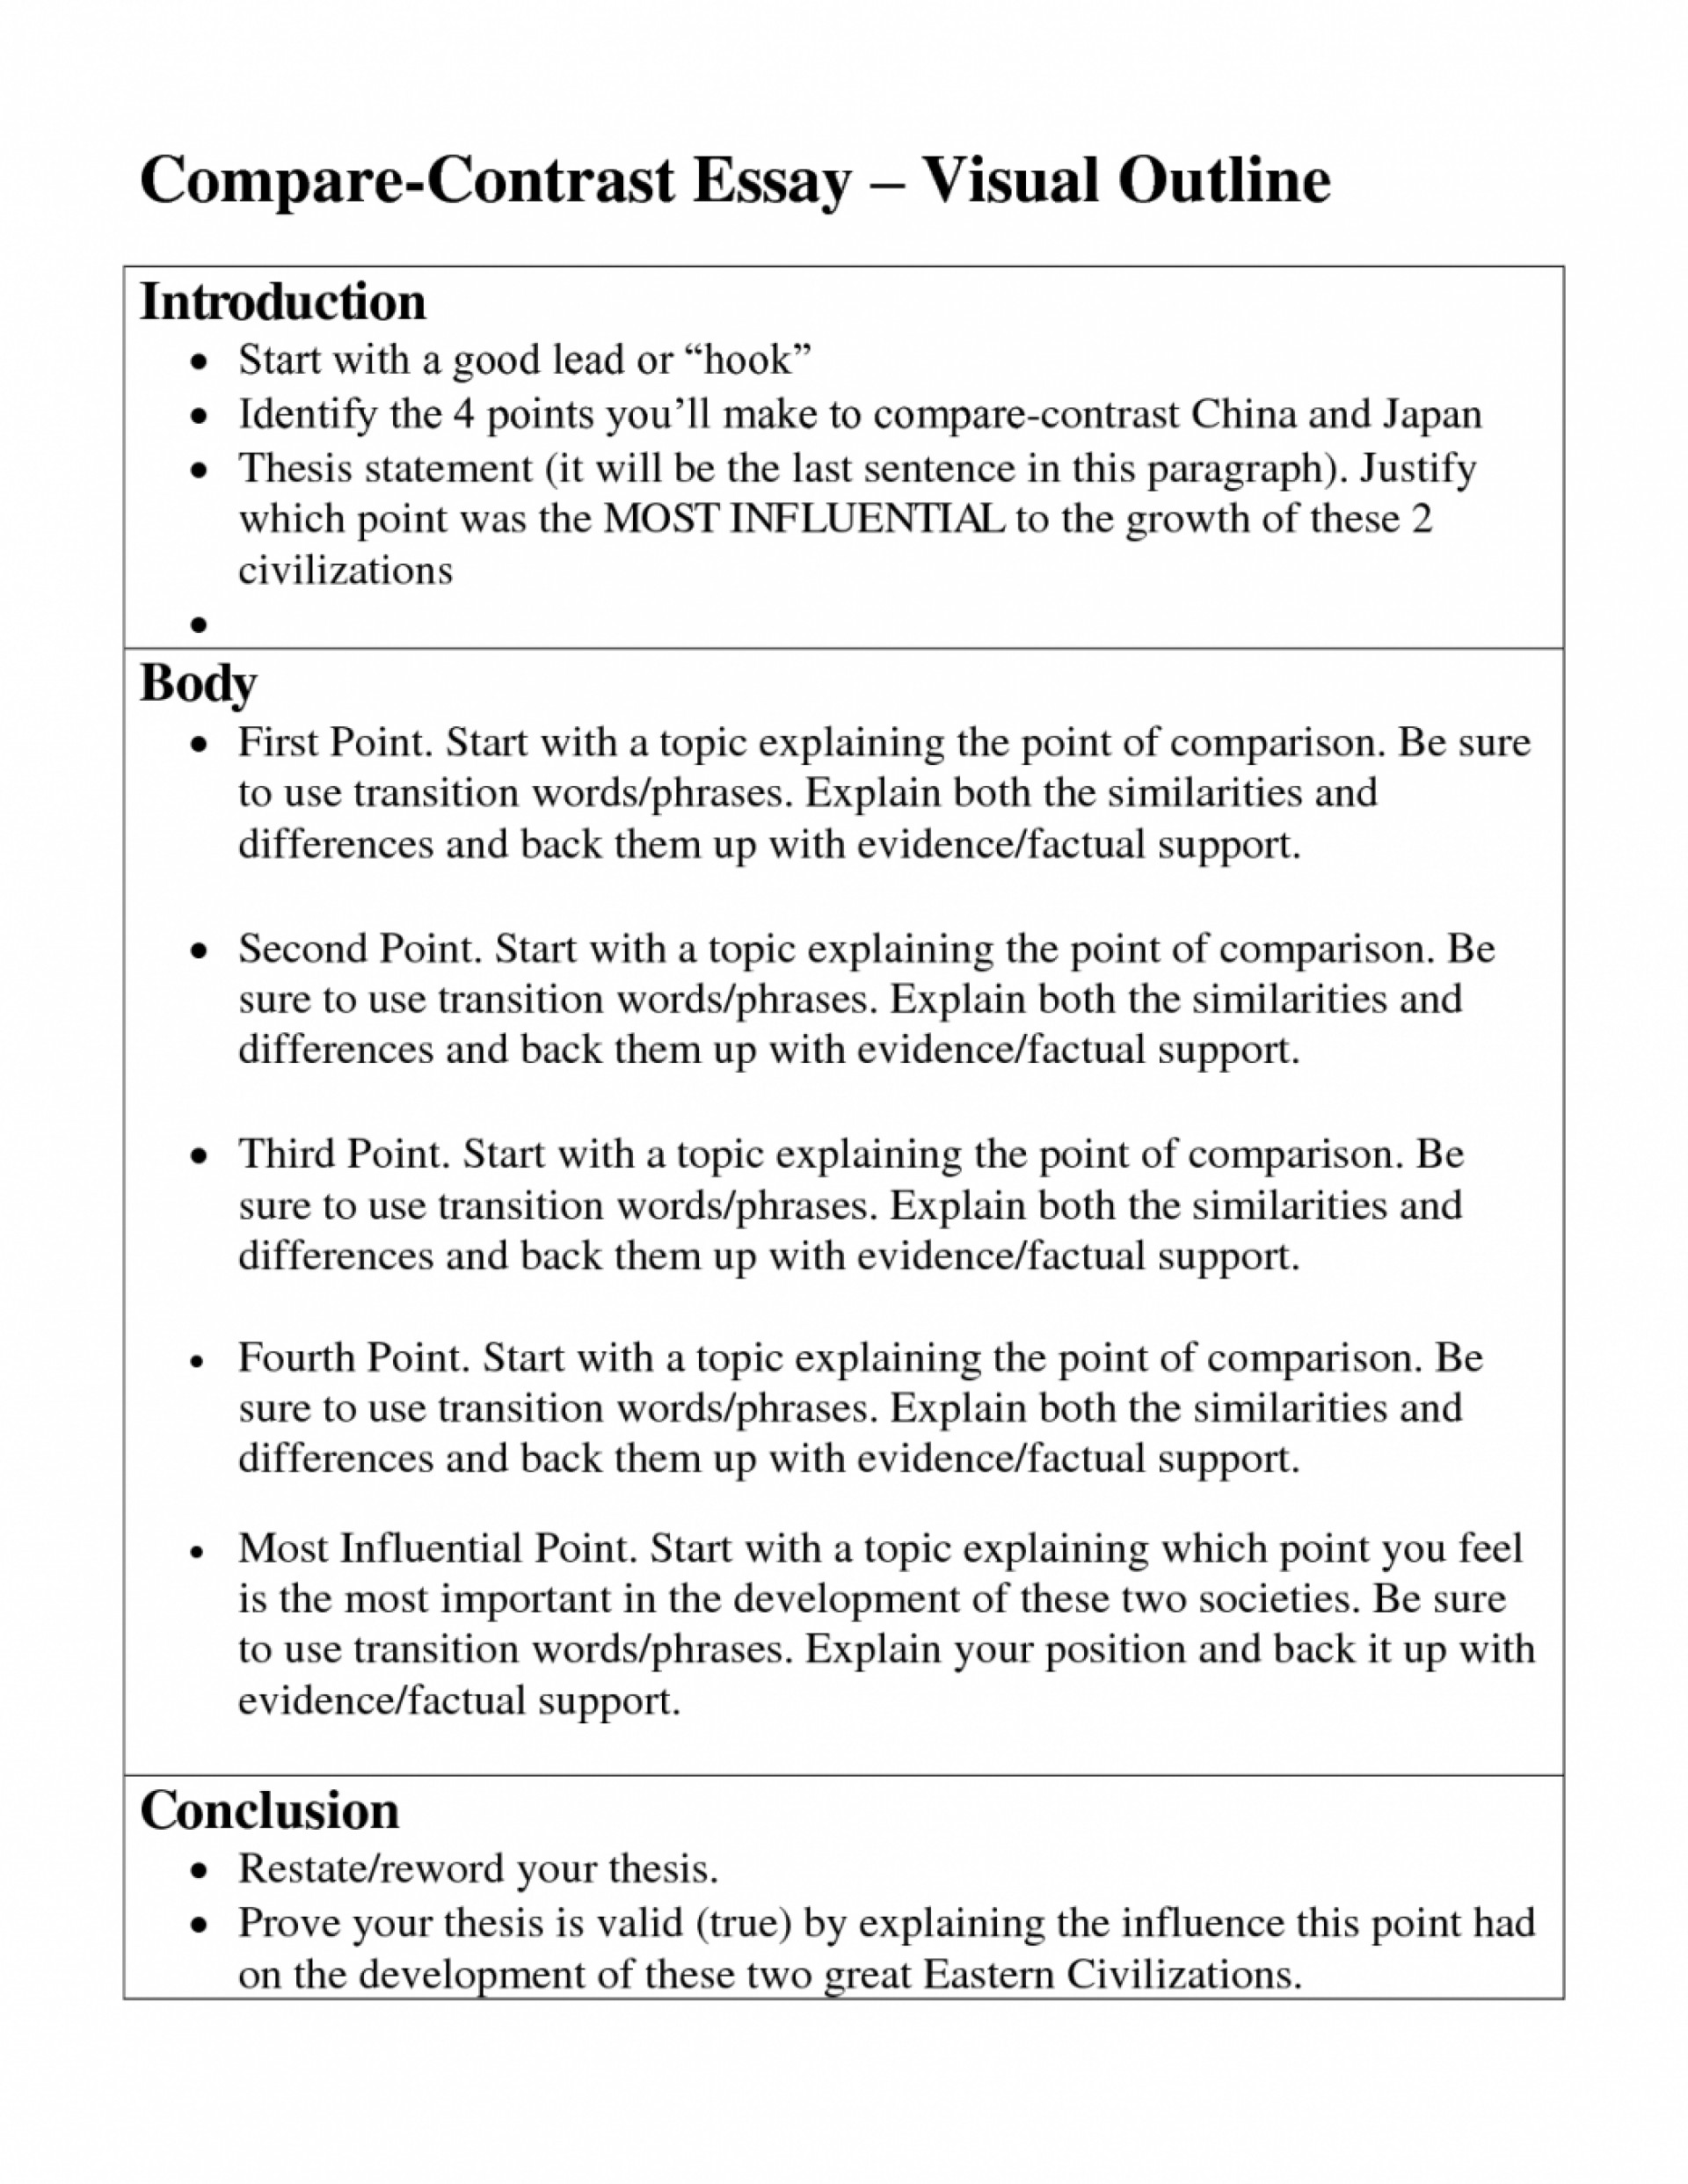 009 Compare And Contrast Essay Topics For High School Students English College Pdf Research Paper 1048x1356 Fantastic Sports Prompts 5th Grade 4th 1920